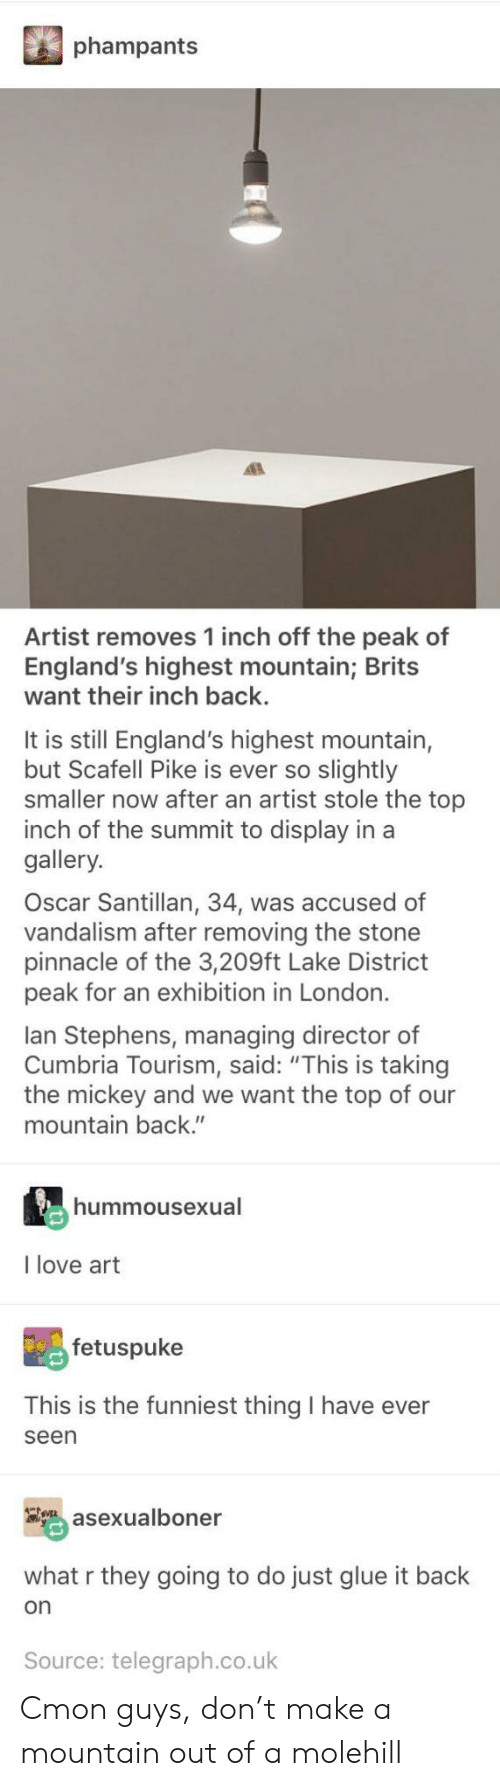 """Telegraph: phampants  Artist removes 1 inch off the peak of  England's highest mountain; Brits  want their inch back.  It is still England's highest mountain,  but Scafell Pike is ever so slightly  smaller now after an artist stole the top  inch of the summit to display in a  gallery.  Oscar Santillan, 34, was accused of  vandalism after removing the stone  pinnacle of the 3,209ft Lake District  peak for an exhibition in London.  lan Stephens, managing director of  Cumbria Tourism, said: """"This is taking  the mickey and we want the top of our  mountain back.""""  hummousexual  I love art  fetuspuke  This is the funniest thing I have ever  seen  asexualboner  what r they going to do just glue it back  on  Source: telegraph.co.uk Cmon guys, don't make a mountain out of a molehill"""